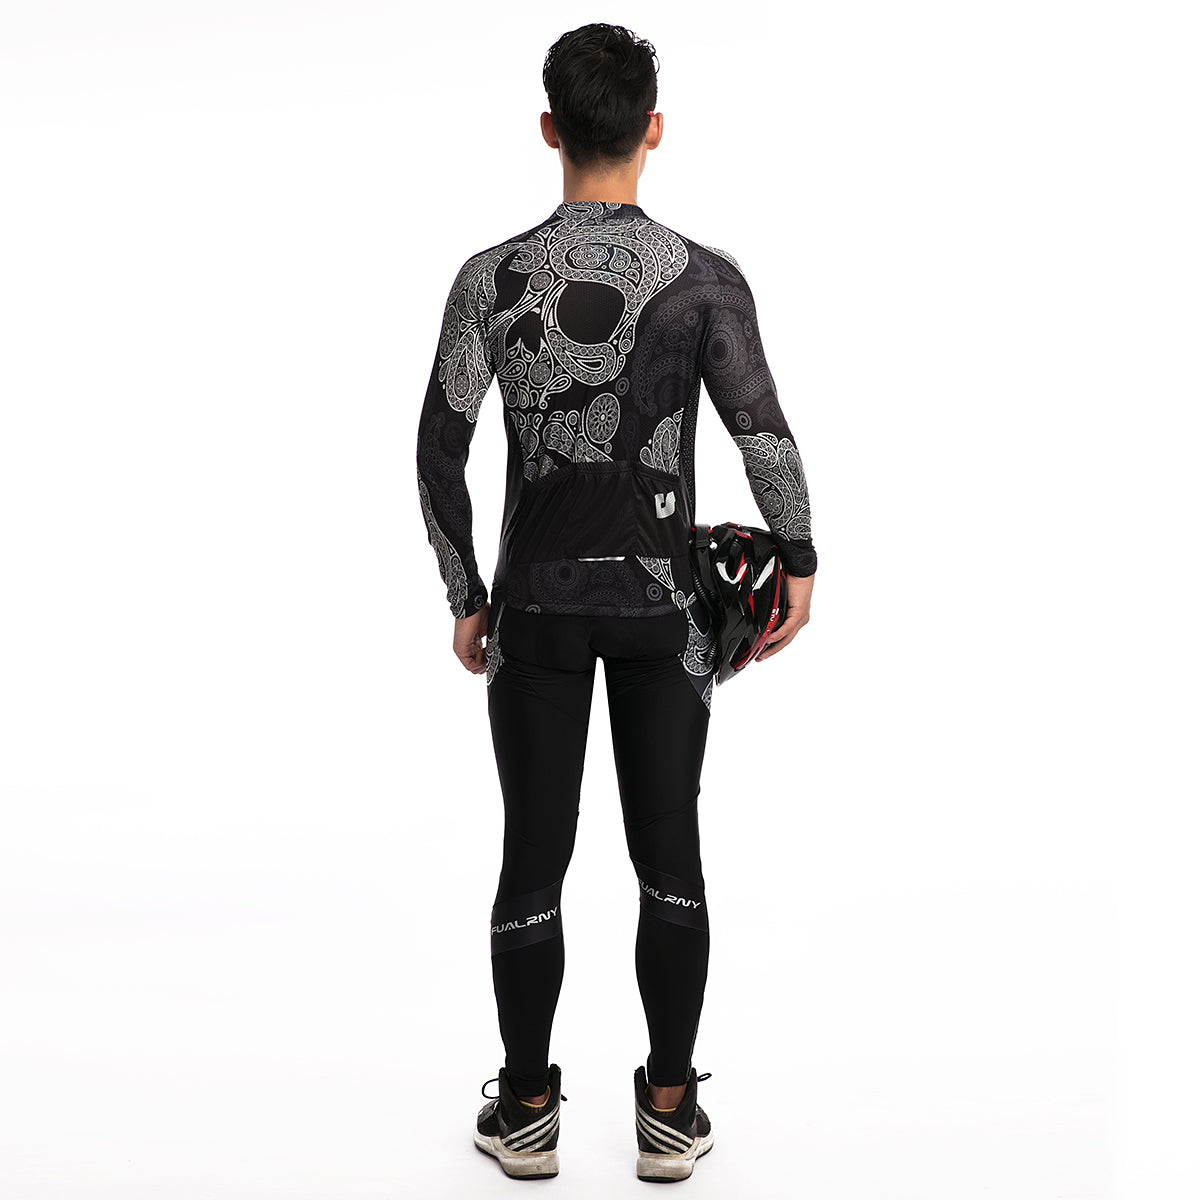 Cross Bones - Men's Thermal Jersey Set